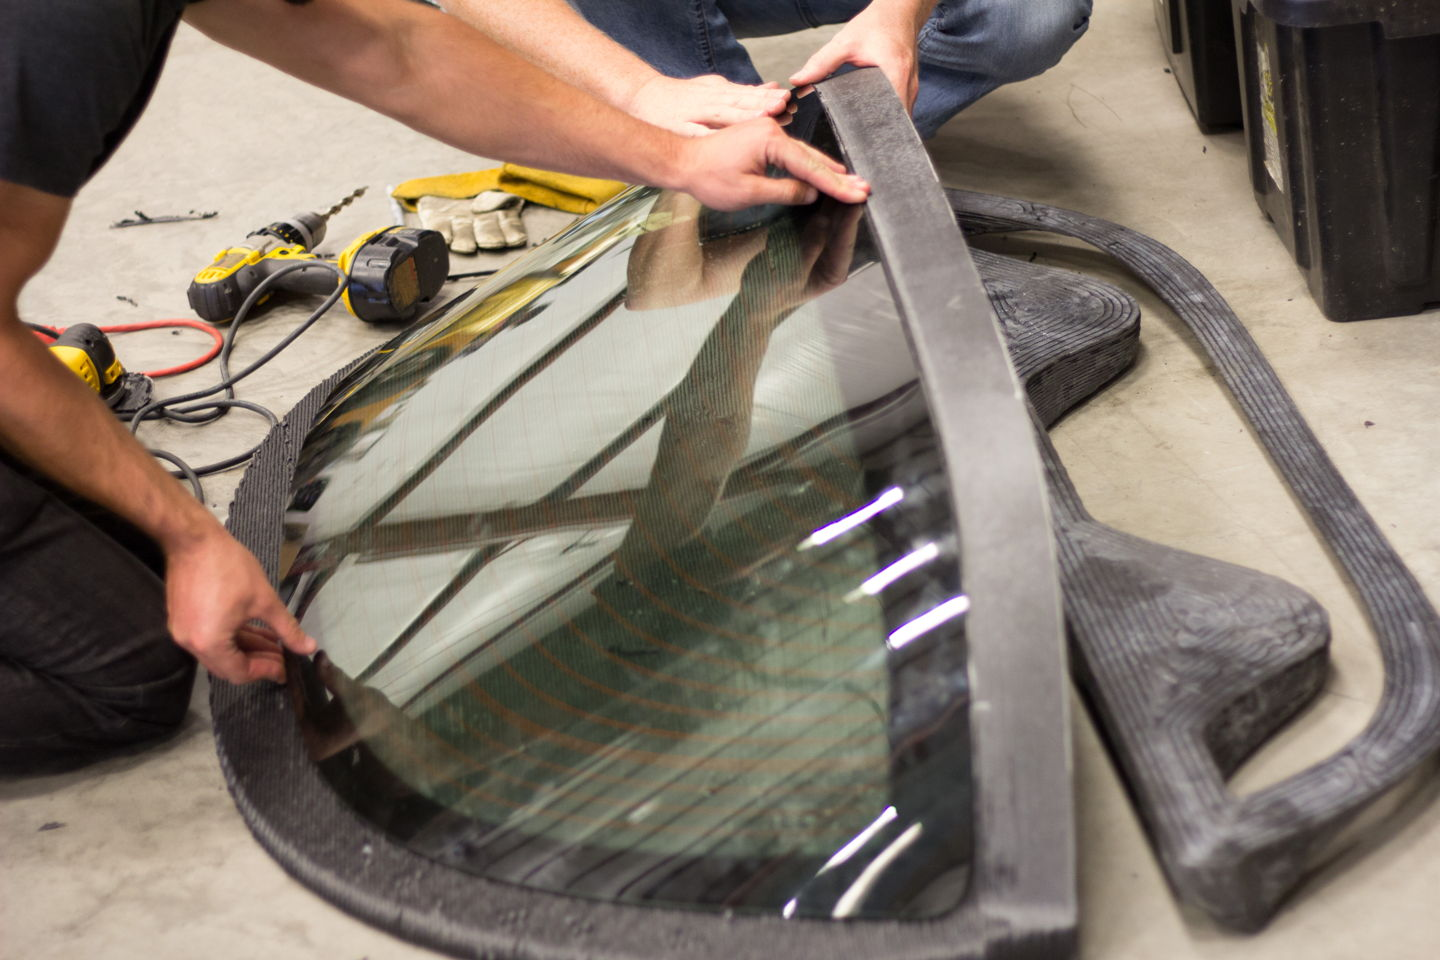 glass local motors LM3D 3D printed car being built